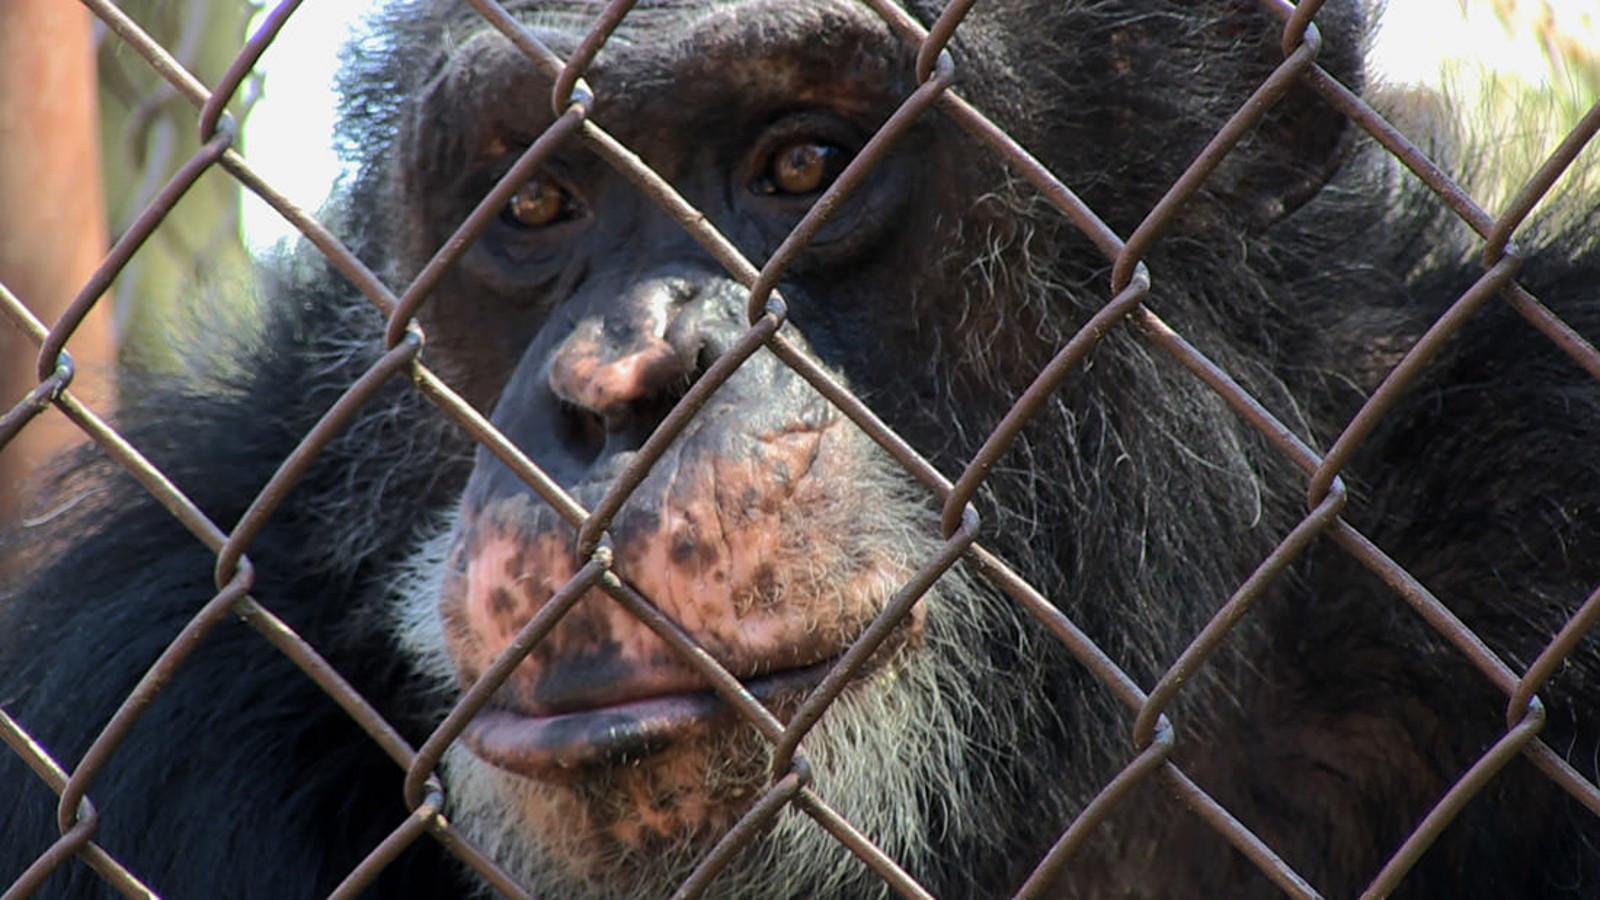 New Film 'Unlocking the Cage' Premiers at Sundance and Marks Major Step Forward for Animal Rights